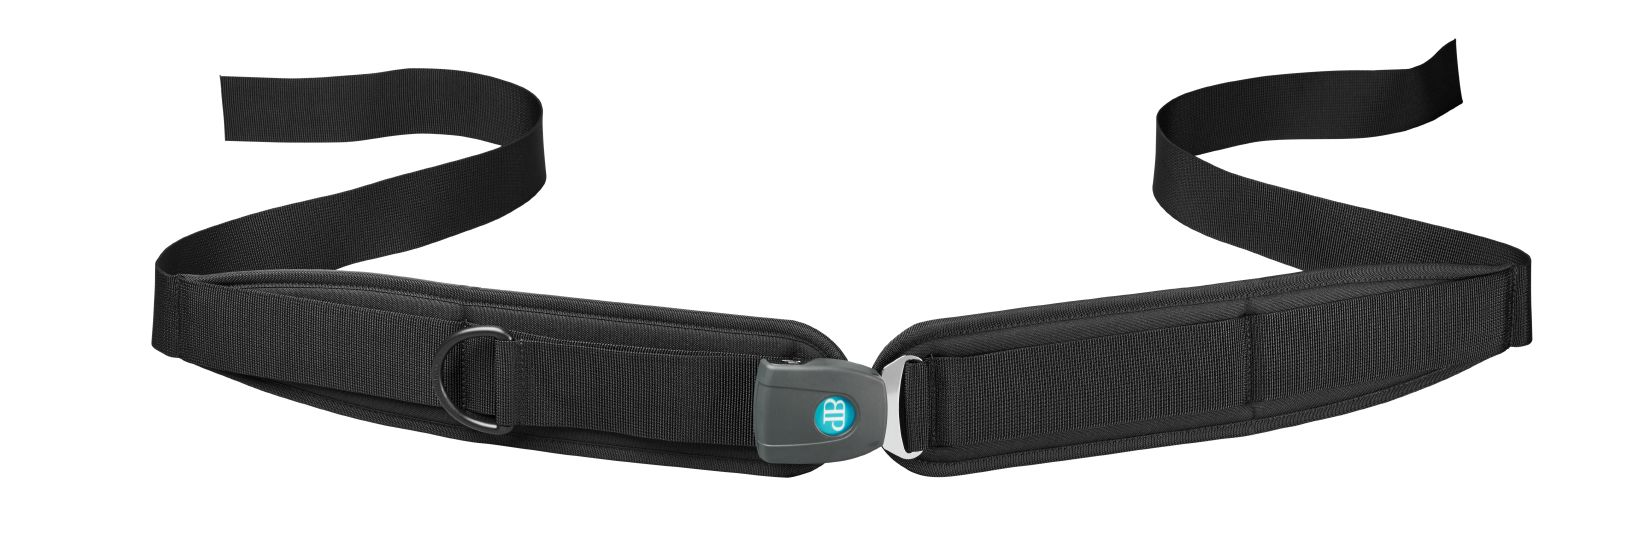 AssistData - Bodypoint padded hip belt from Invacare A/S